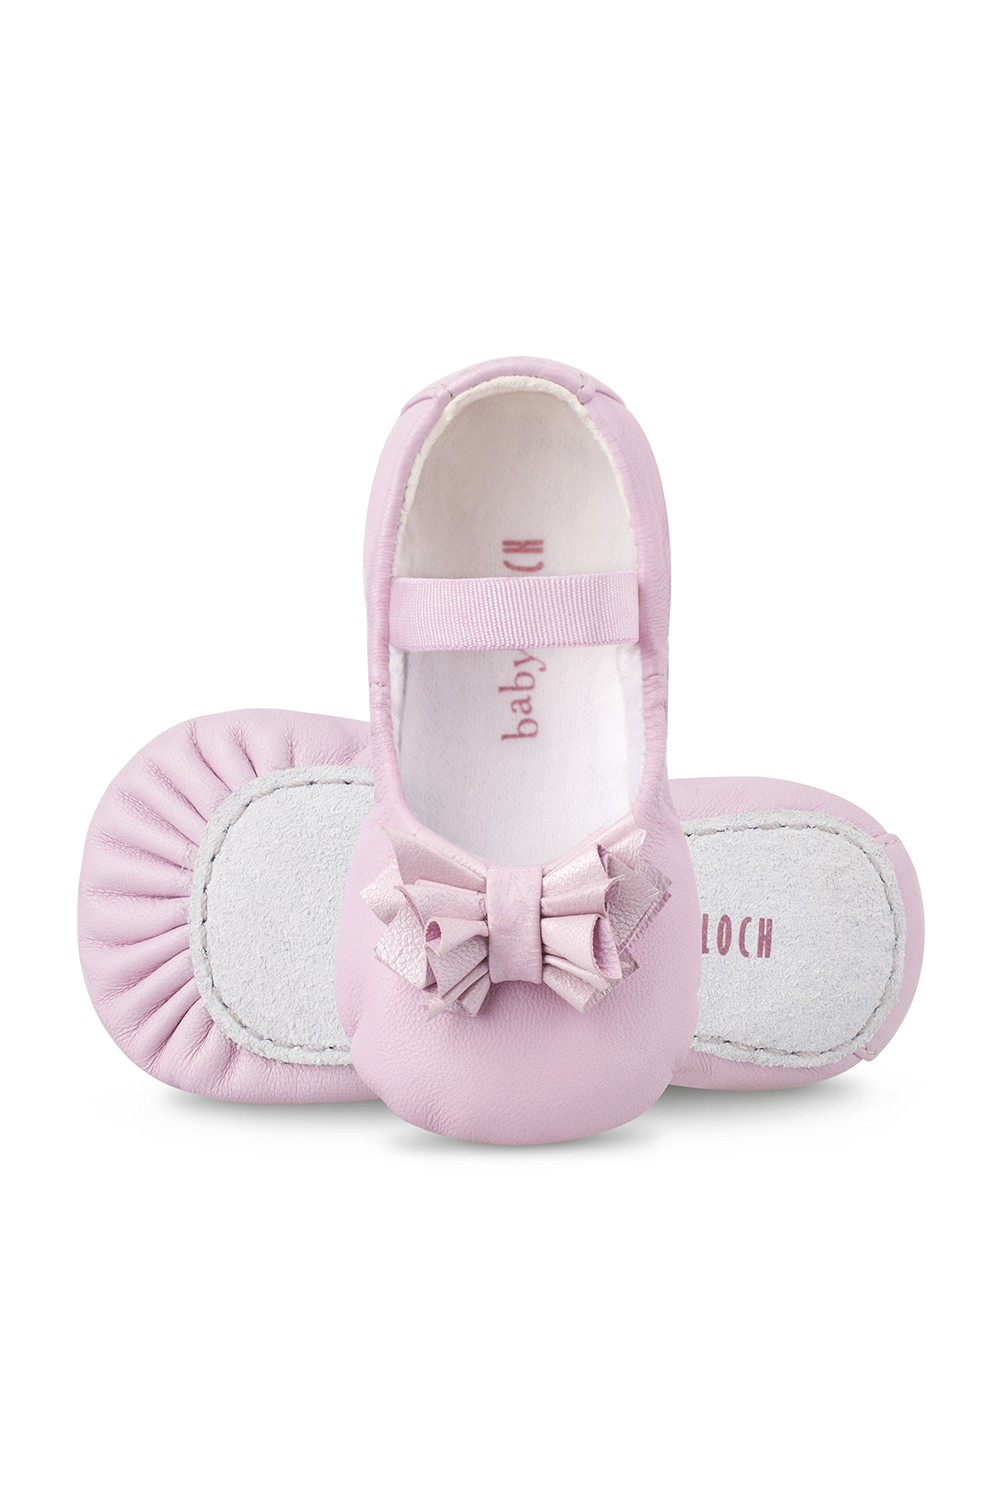 Twilight Babies Fashion Shoes